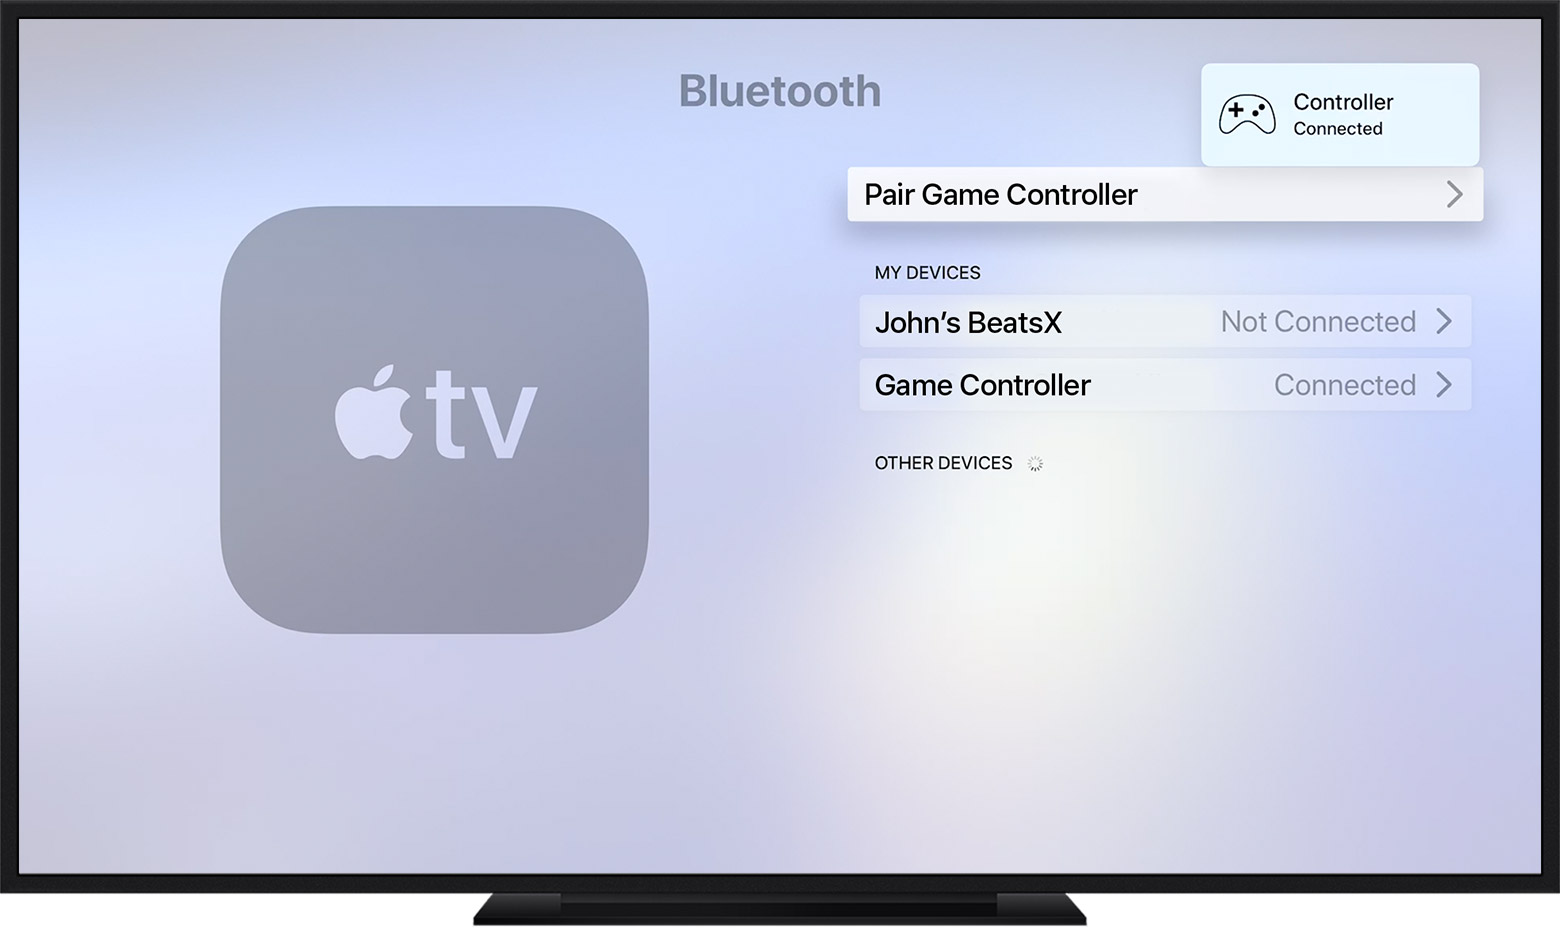 tvos13-settings-remotes-devices-bluetooth-game-controller-connected.jpg